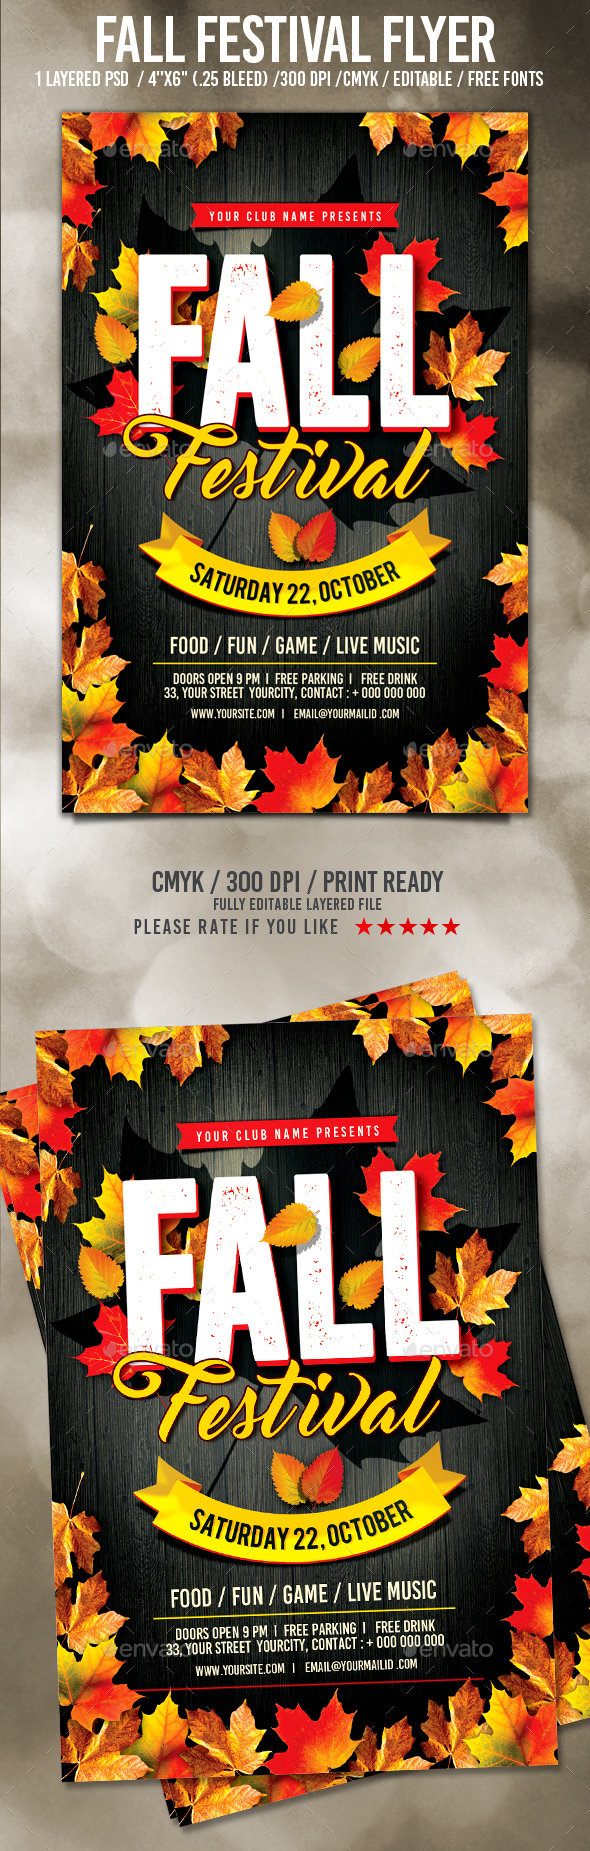 fall festival flyer by pixelyes graphicriver. Black Bedroom Furniture Sets. Home Design Ideas